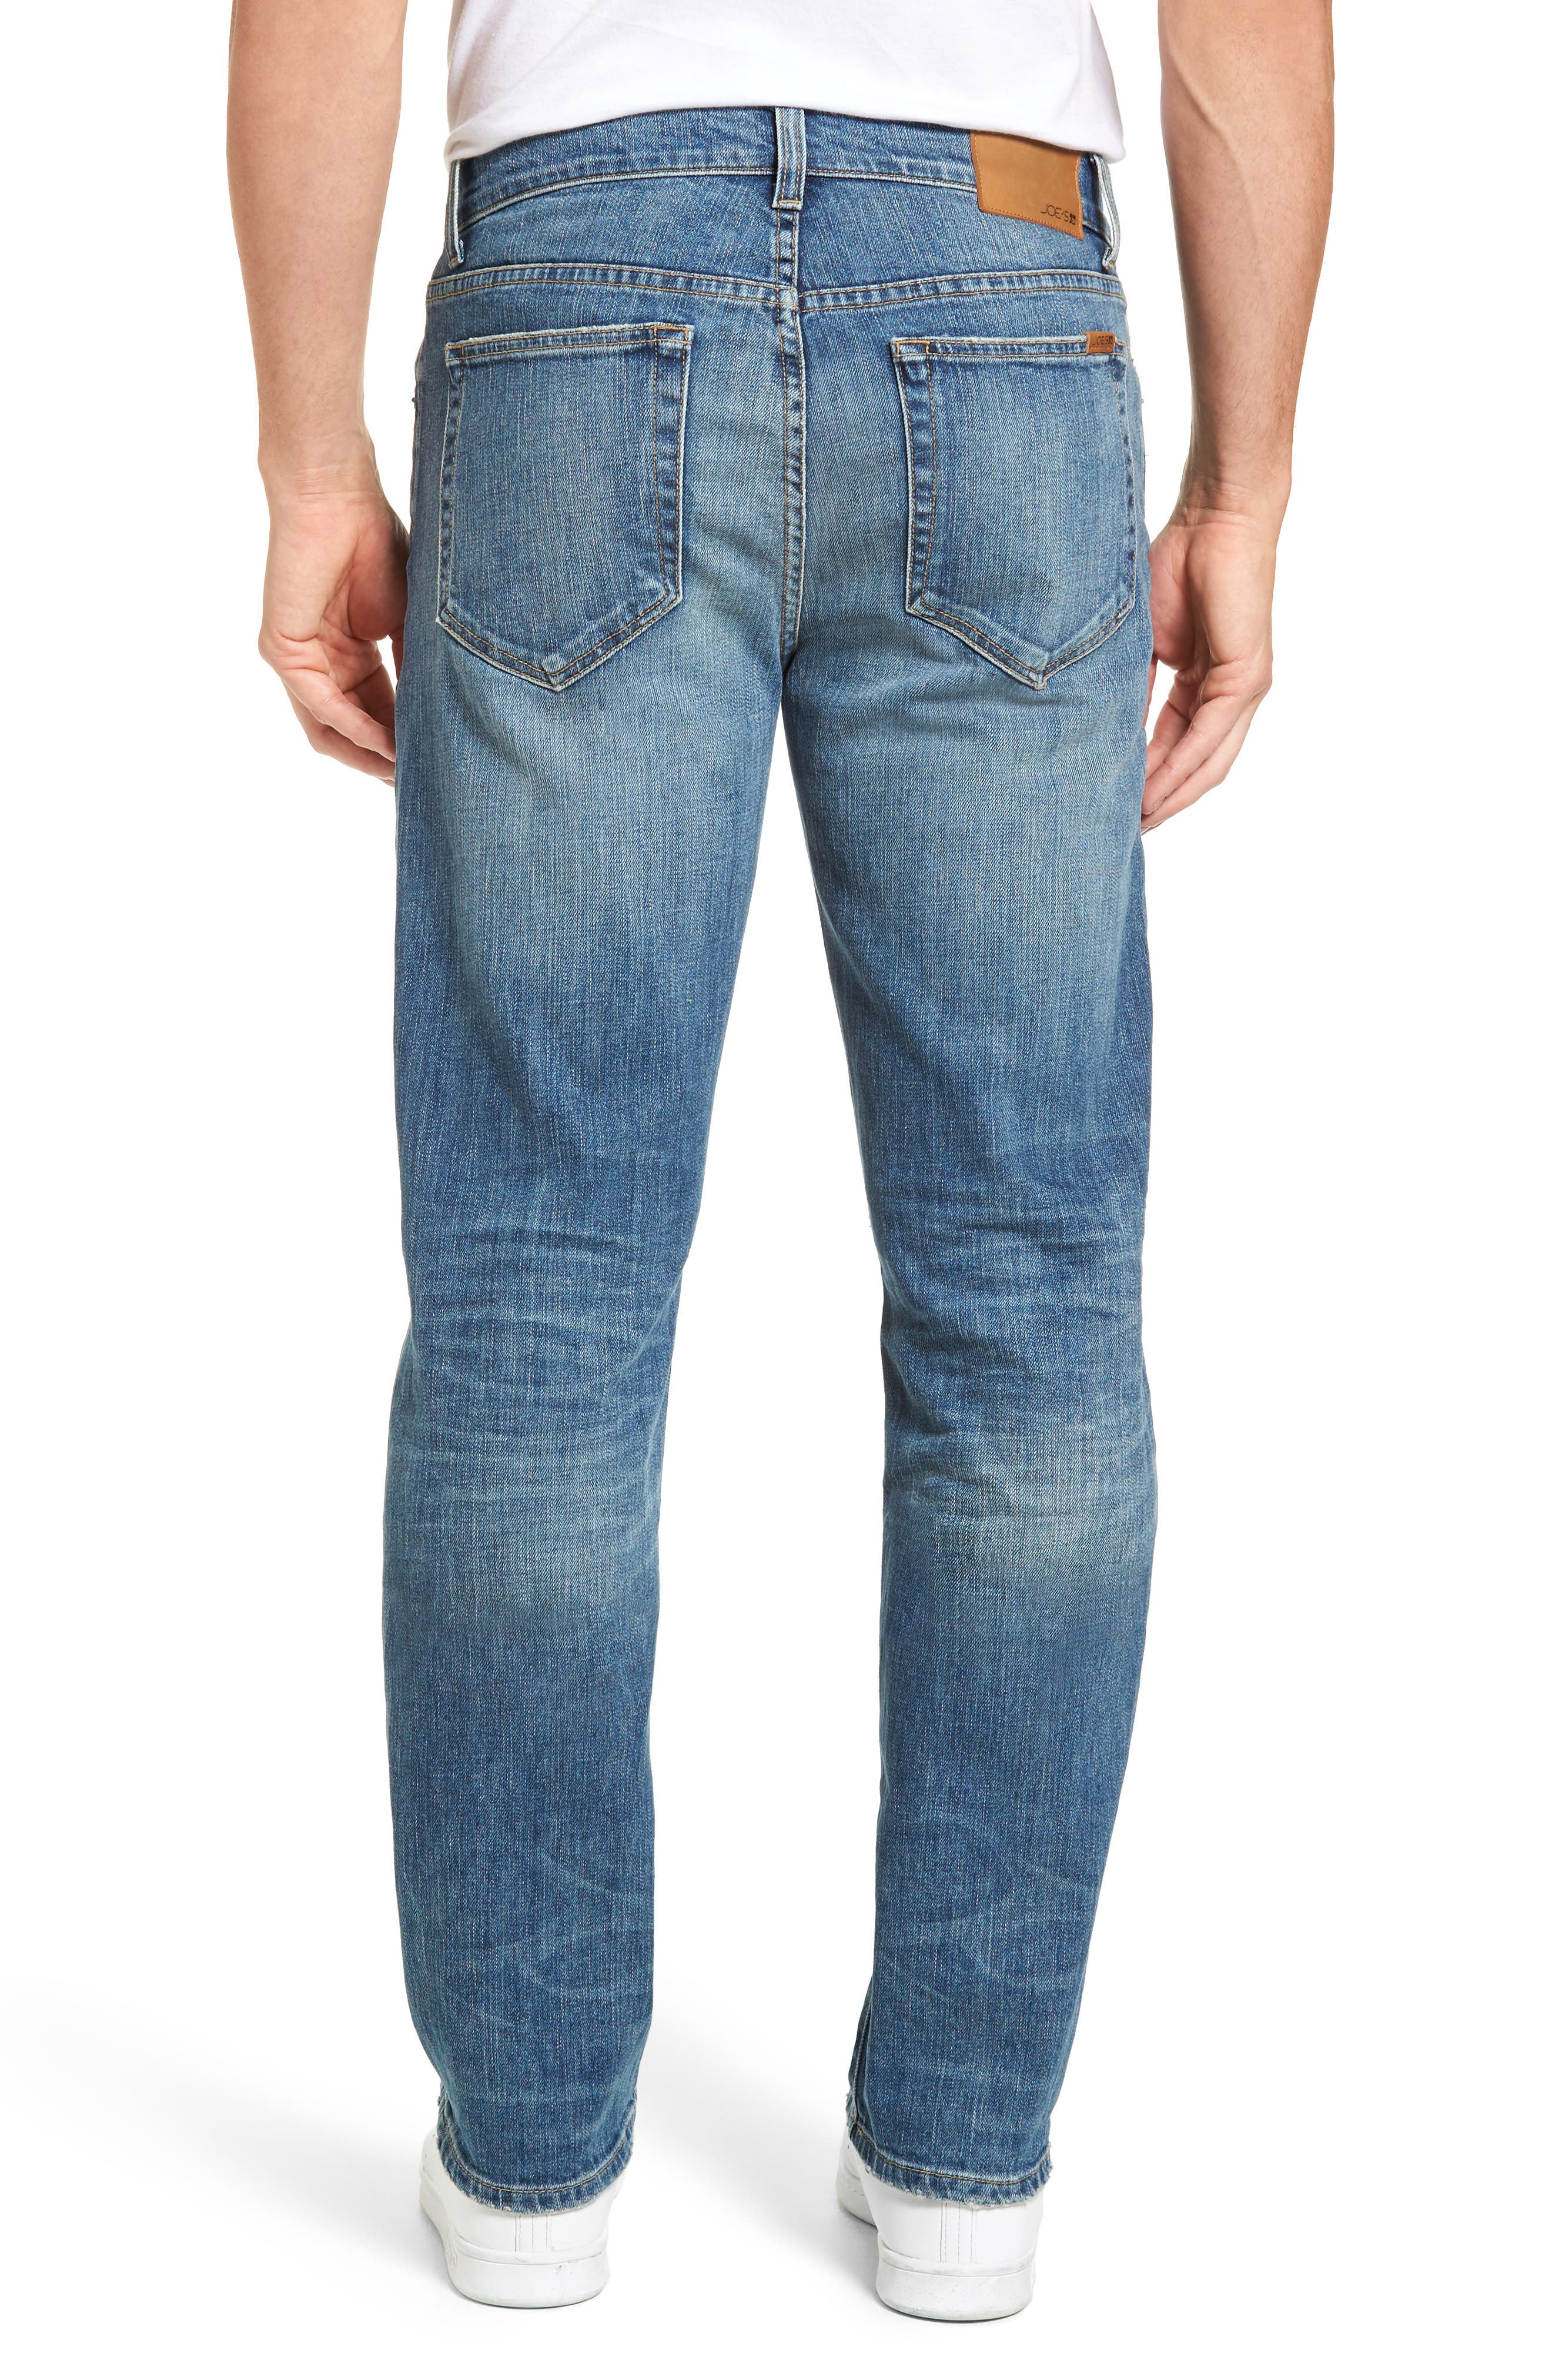 Brixton Slim Straight Fit Jeans,                             Alternate thumbnail 2, color,                             400